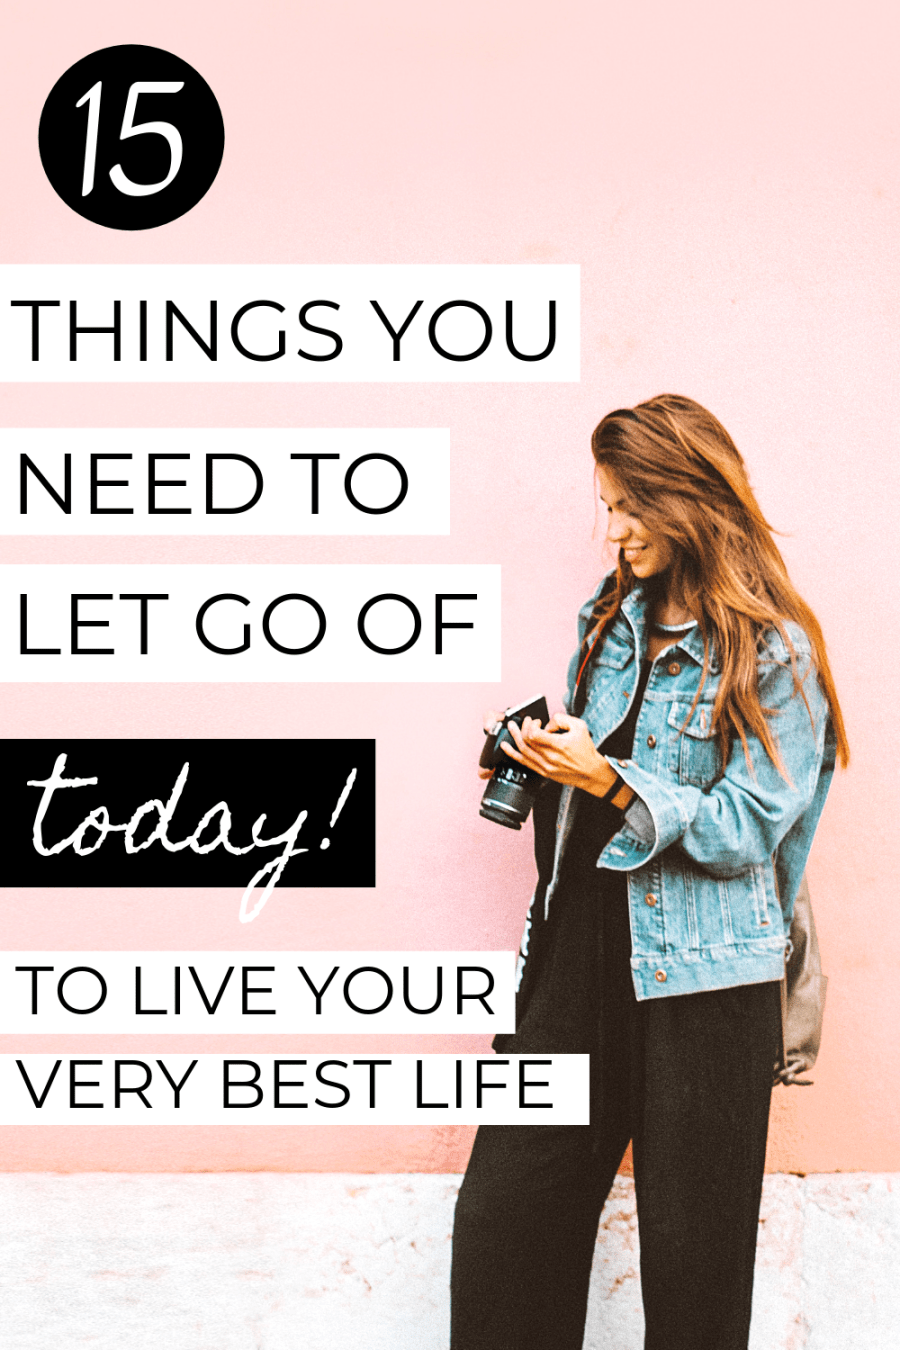 15 Things You Need to Let go of Today to Live Your Very Best Life